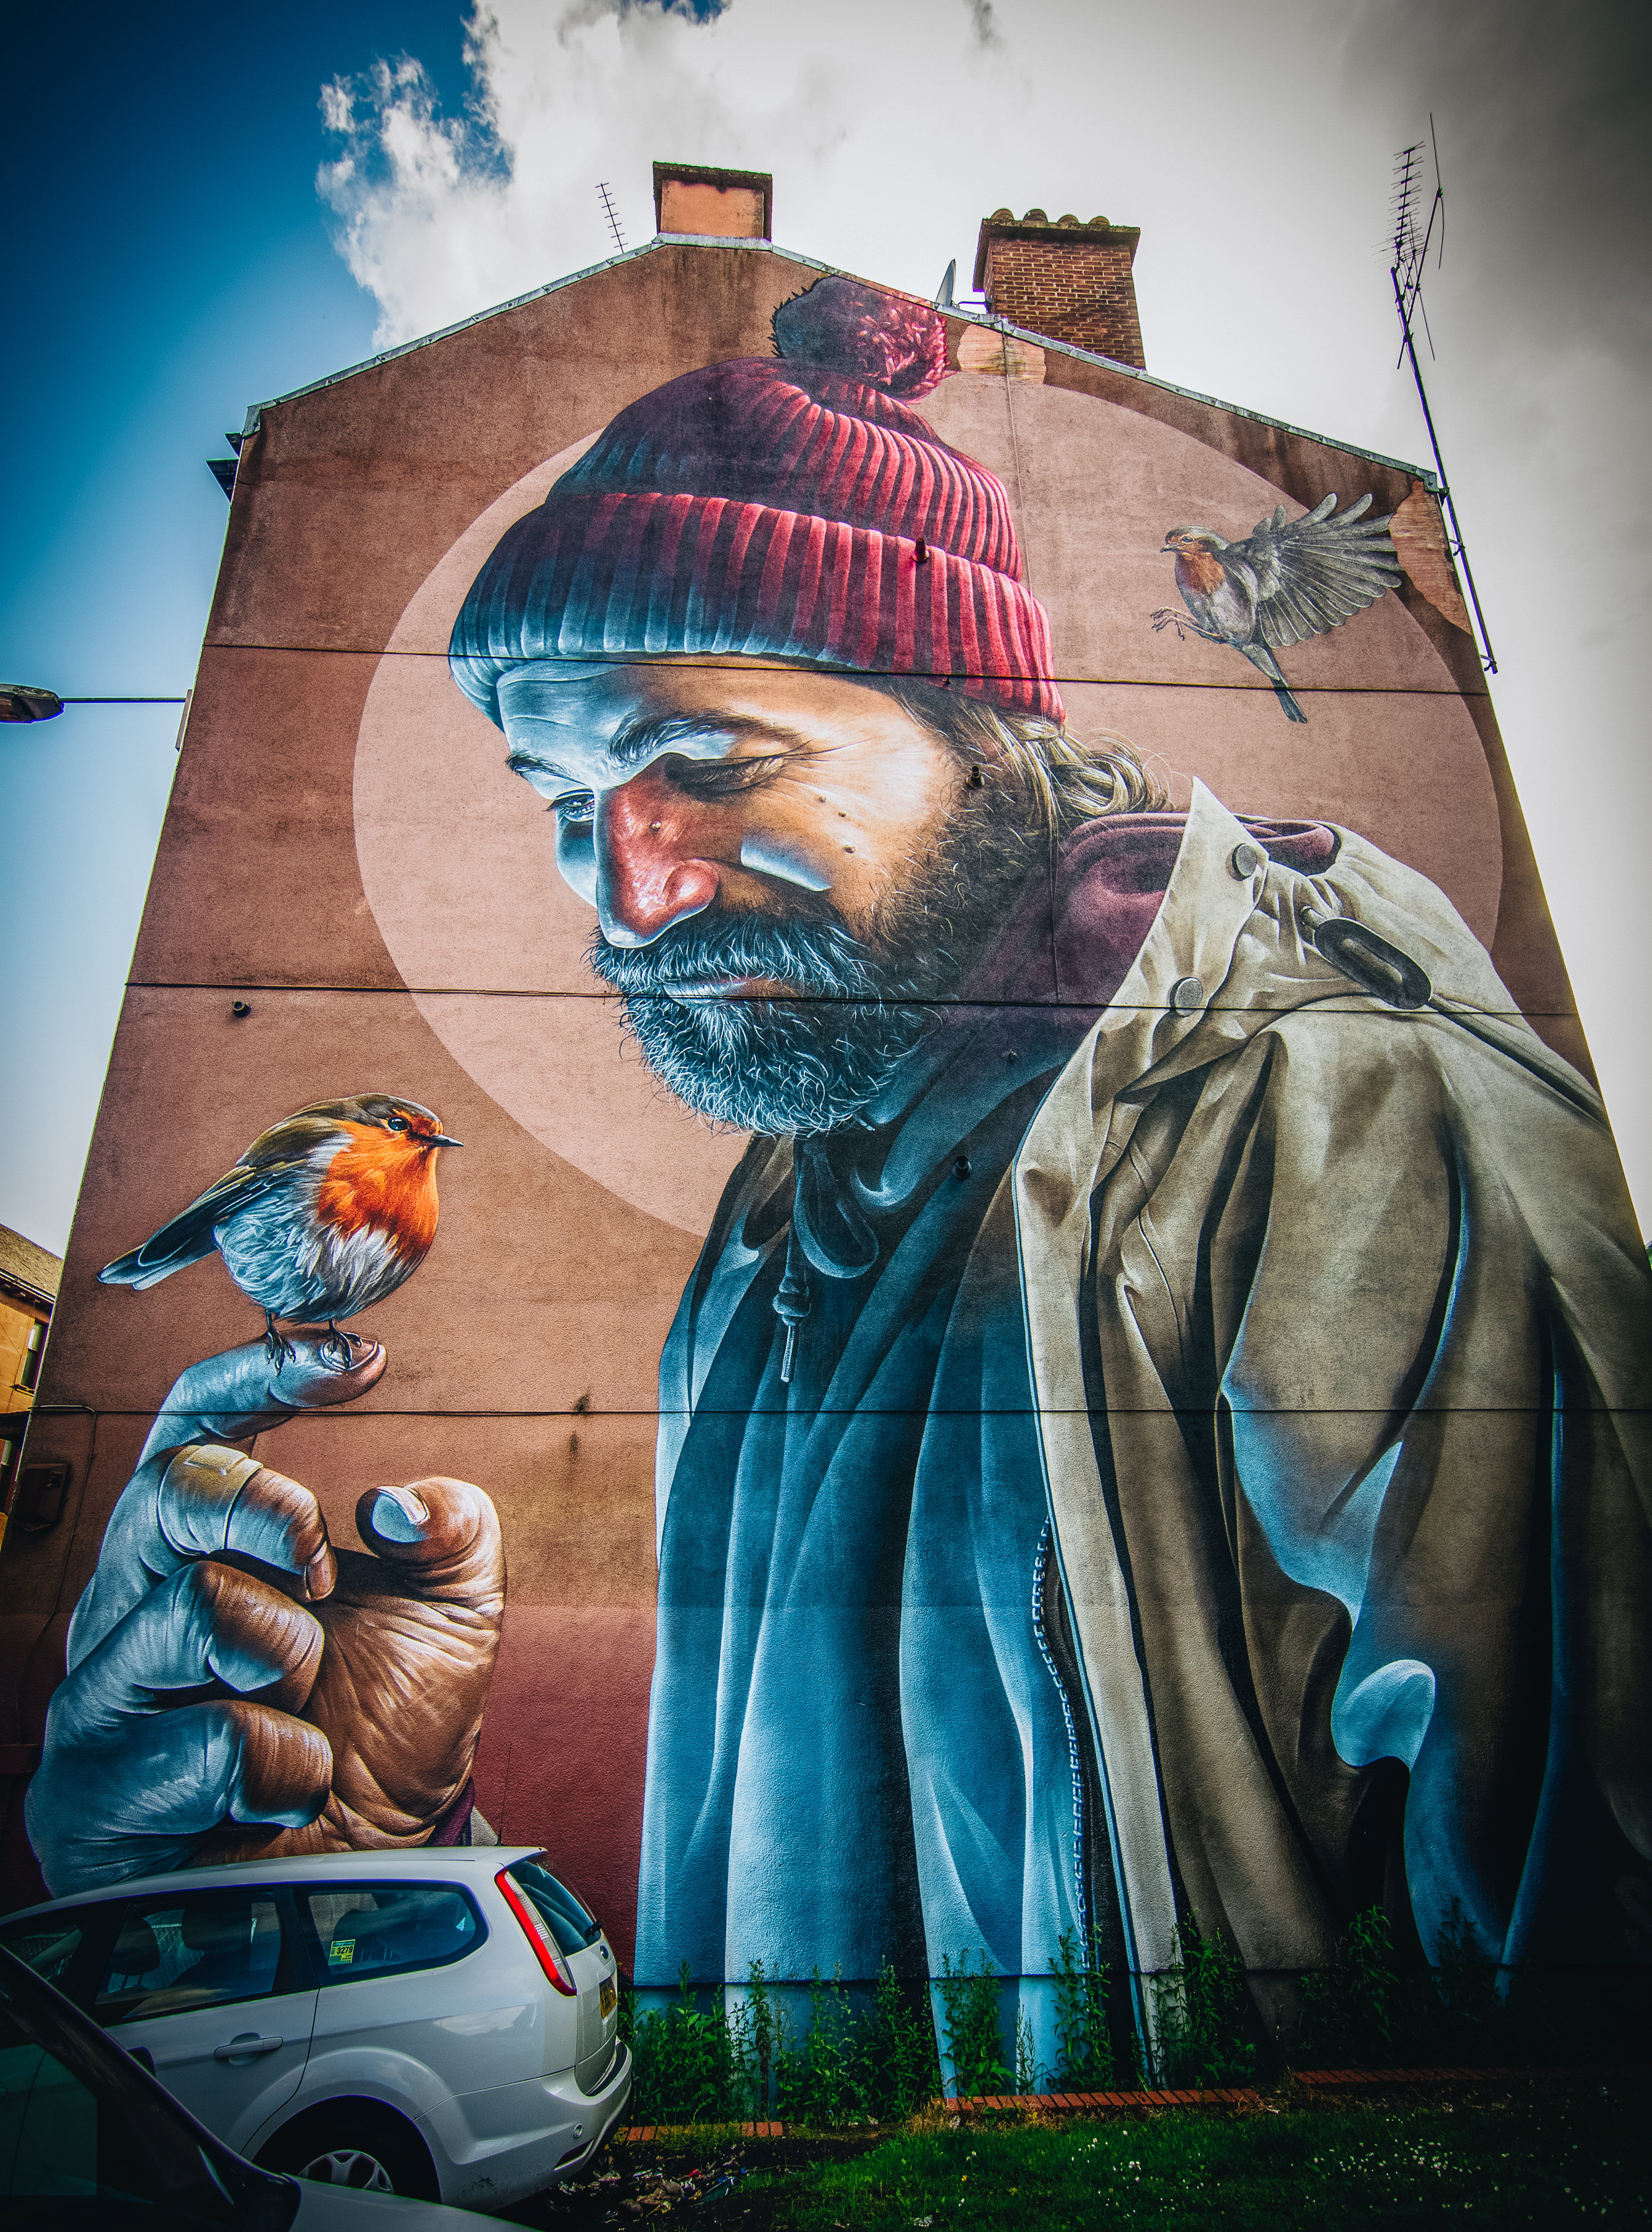 This is one of my favourite pieces of street art. St. Mungo is Glasgow's patron saint and is pictured here as he would likely look today, homeless and caring for robins. ( Read more here .)